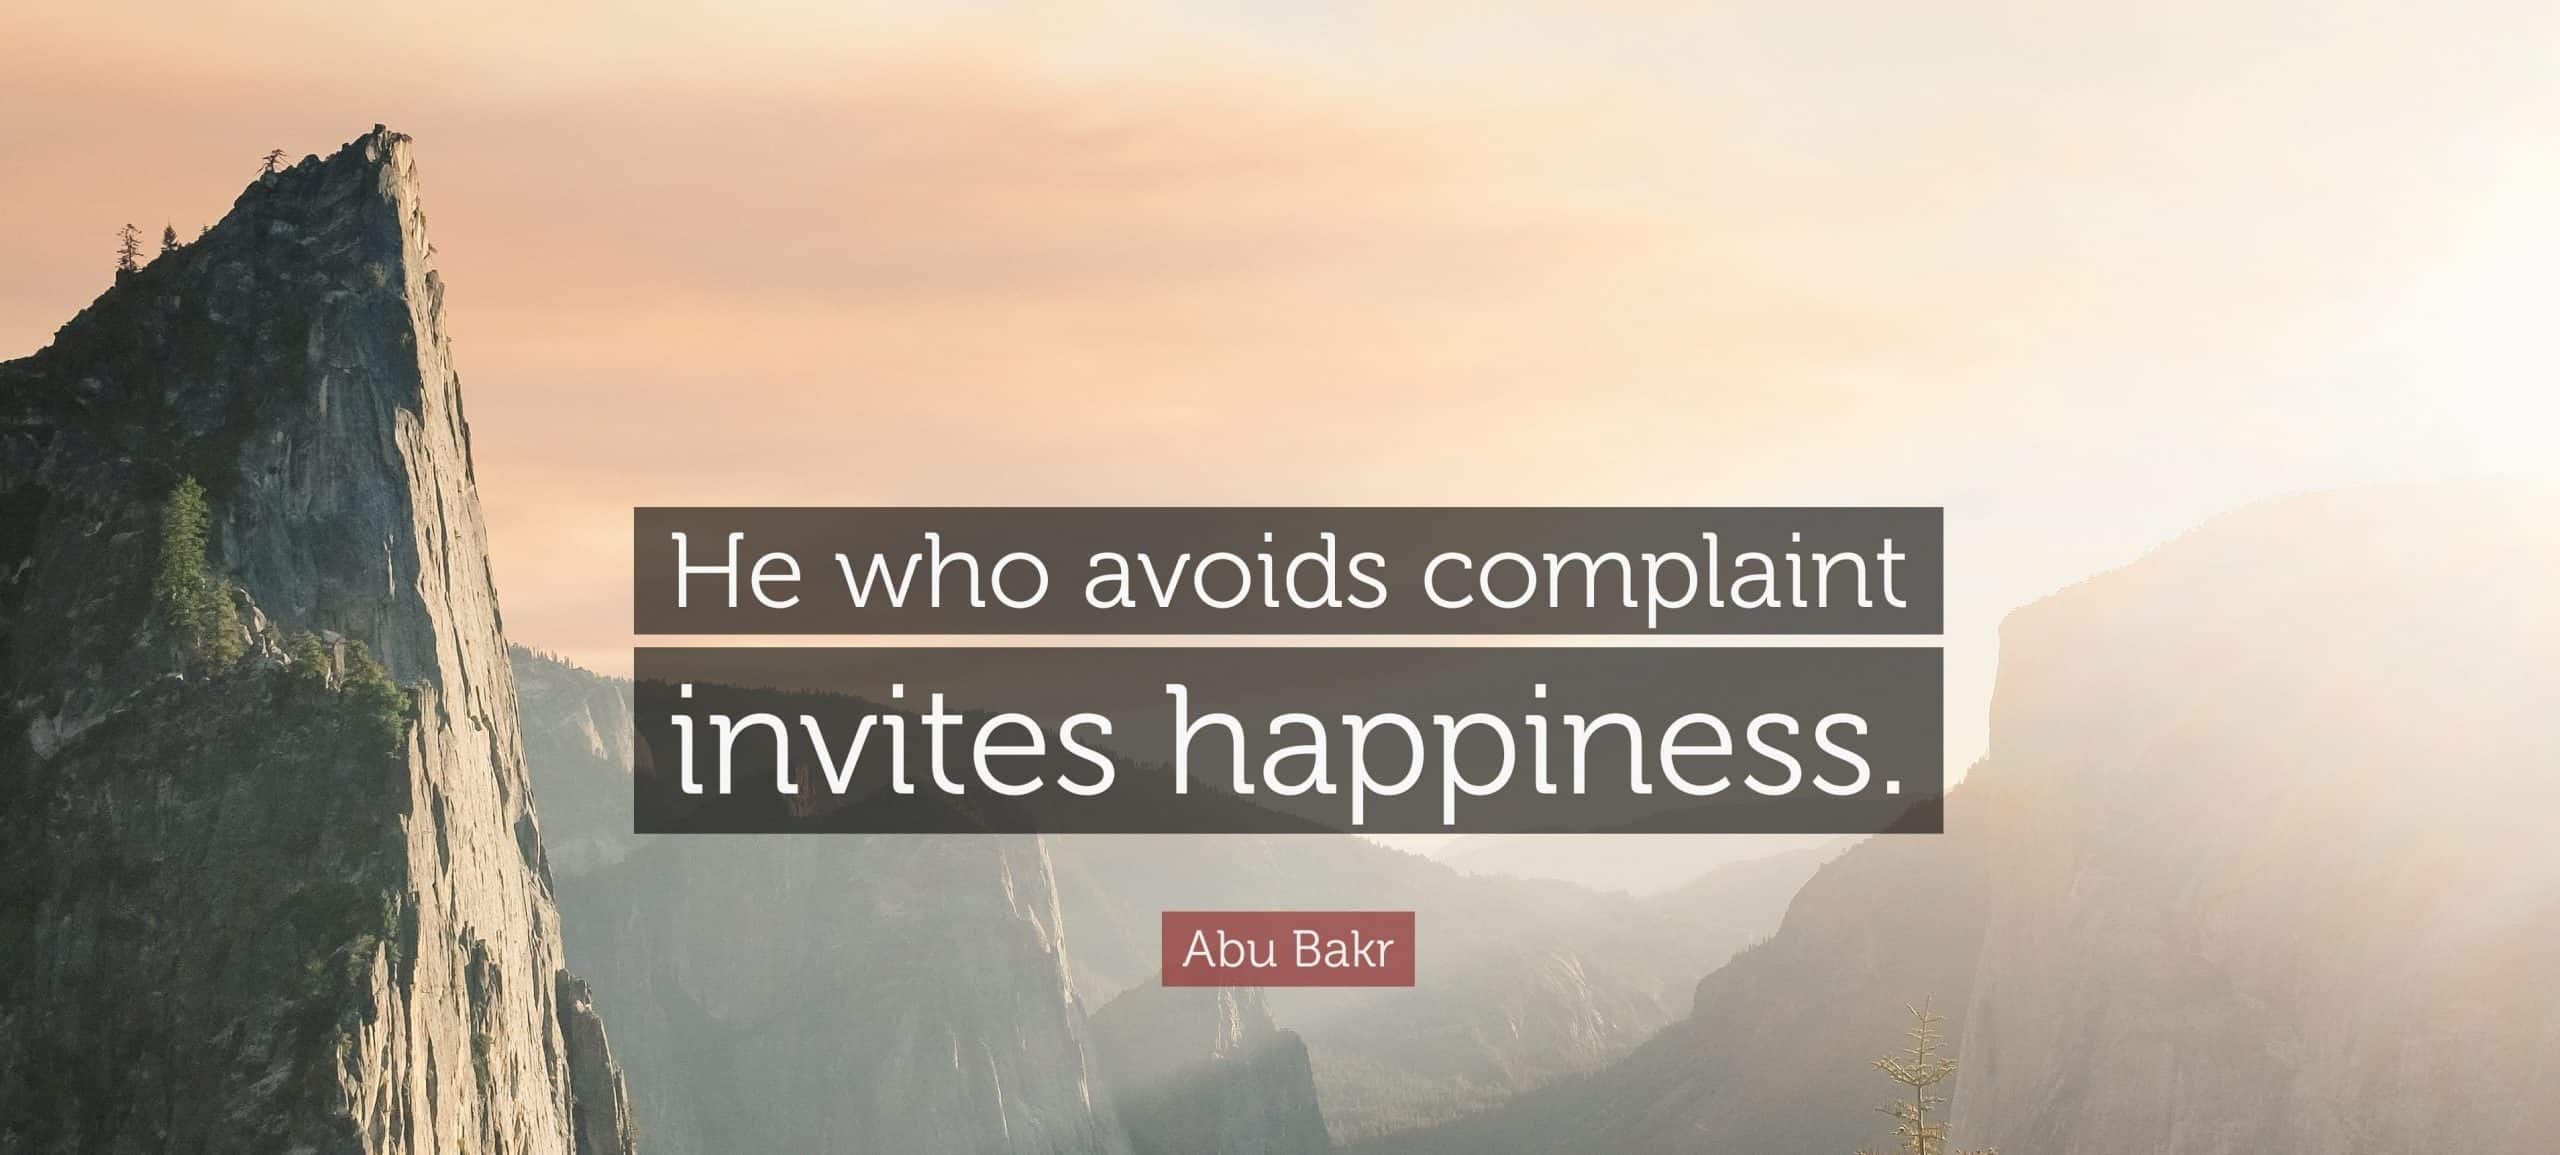 Hazrat Abu Bakar Saddique R.A Quotes and Sayings (14)